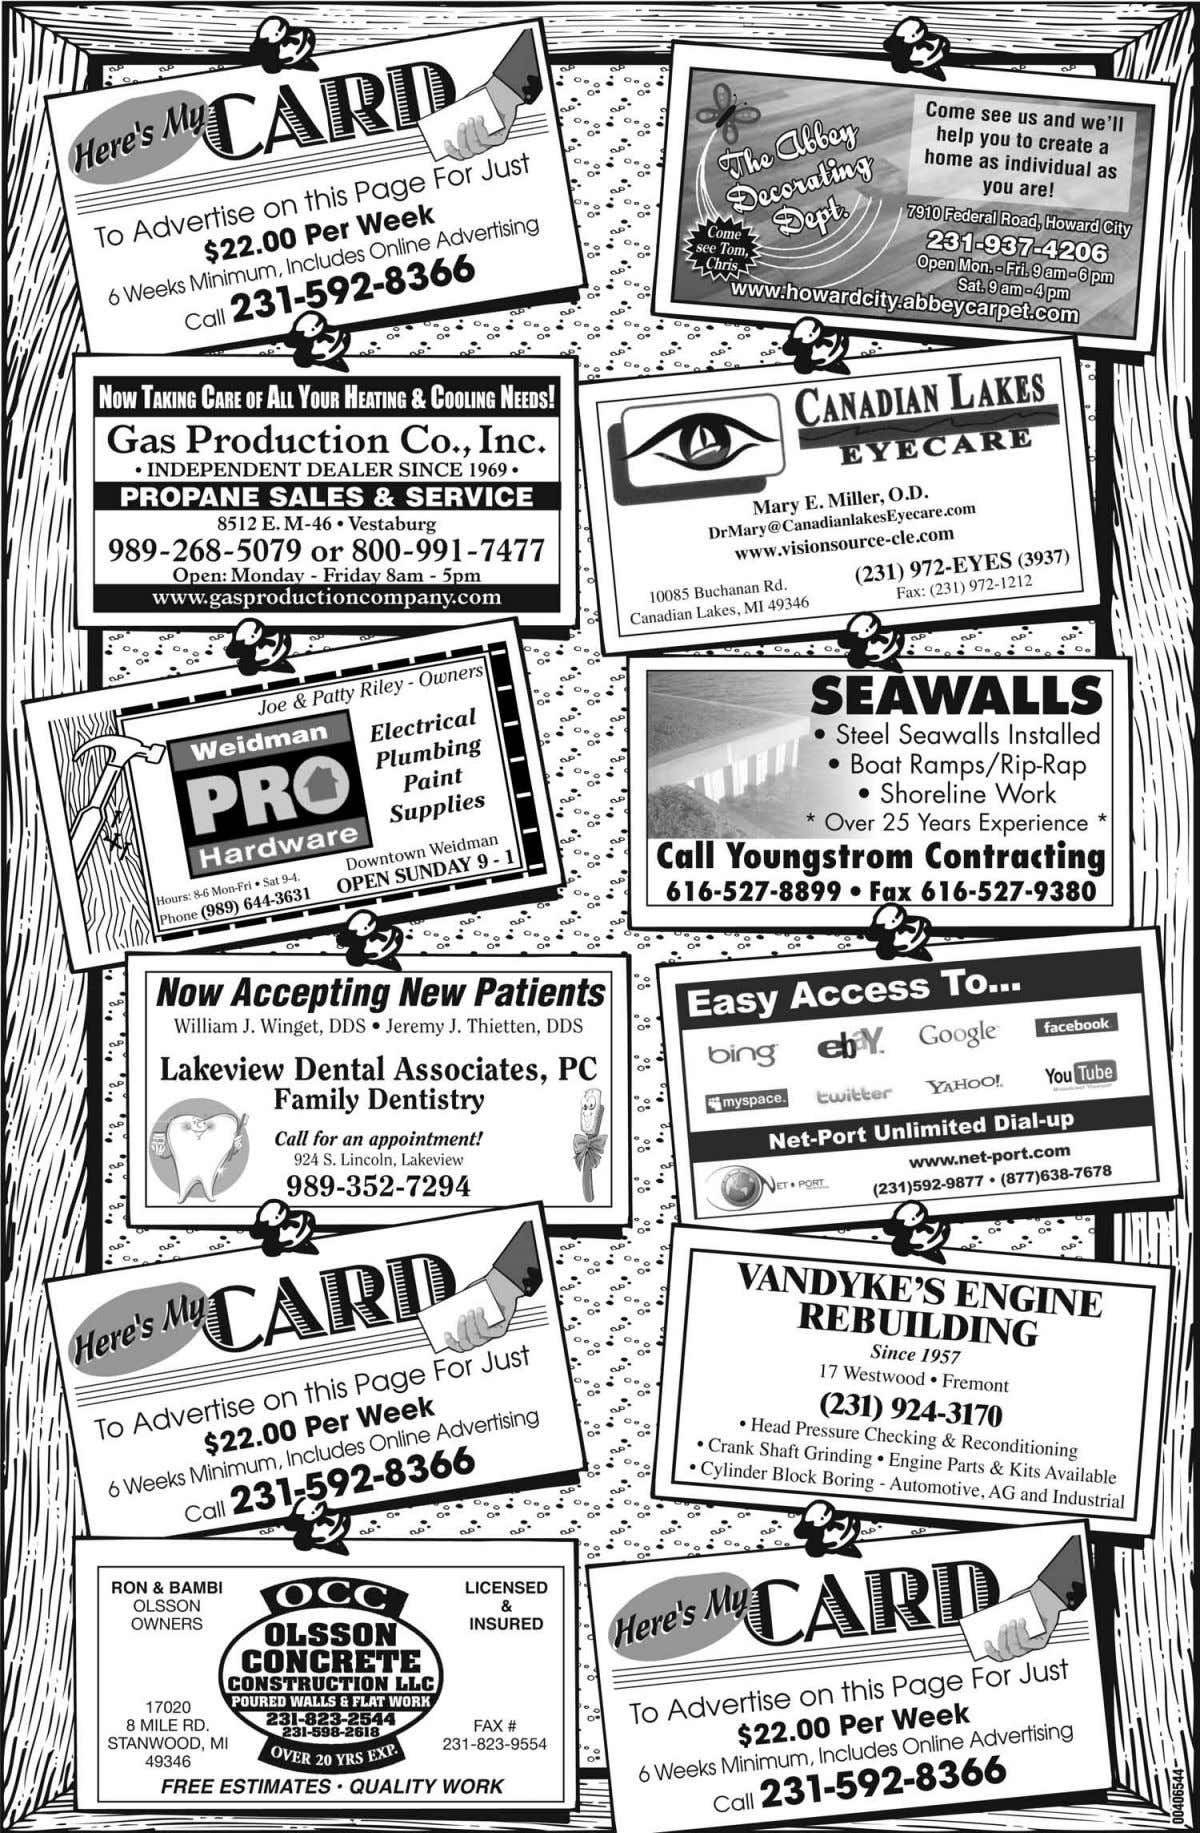 20 PIONEER EAST NEWS SHOPPER • MONDAY, APRIL 18, 2011